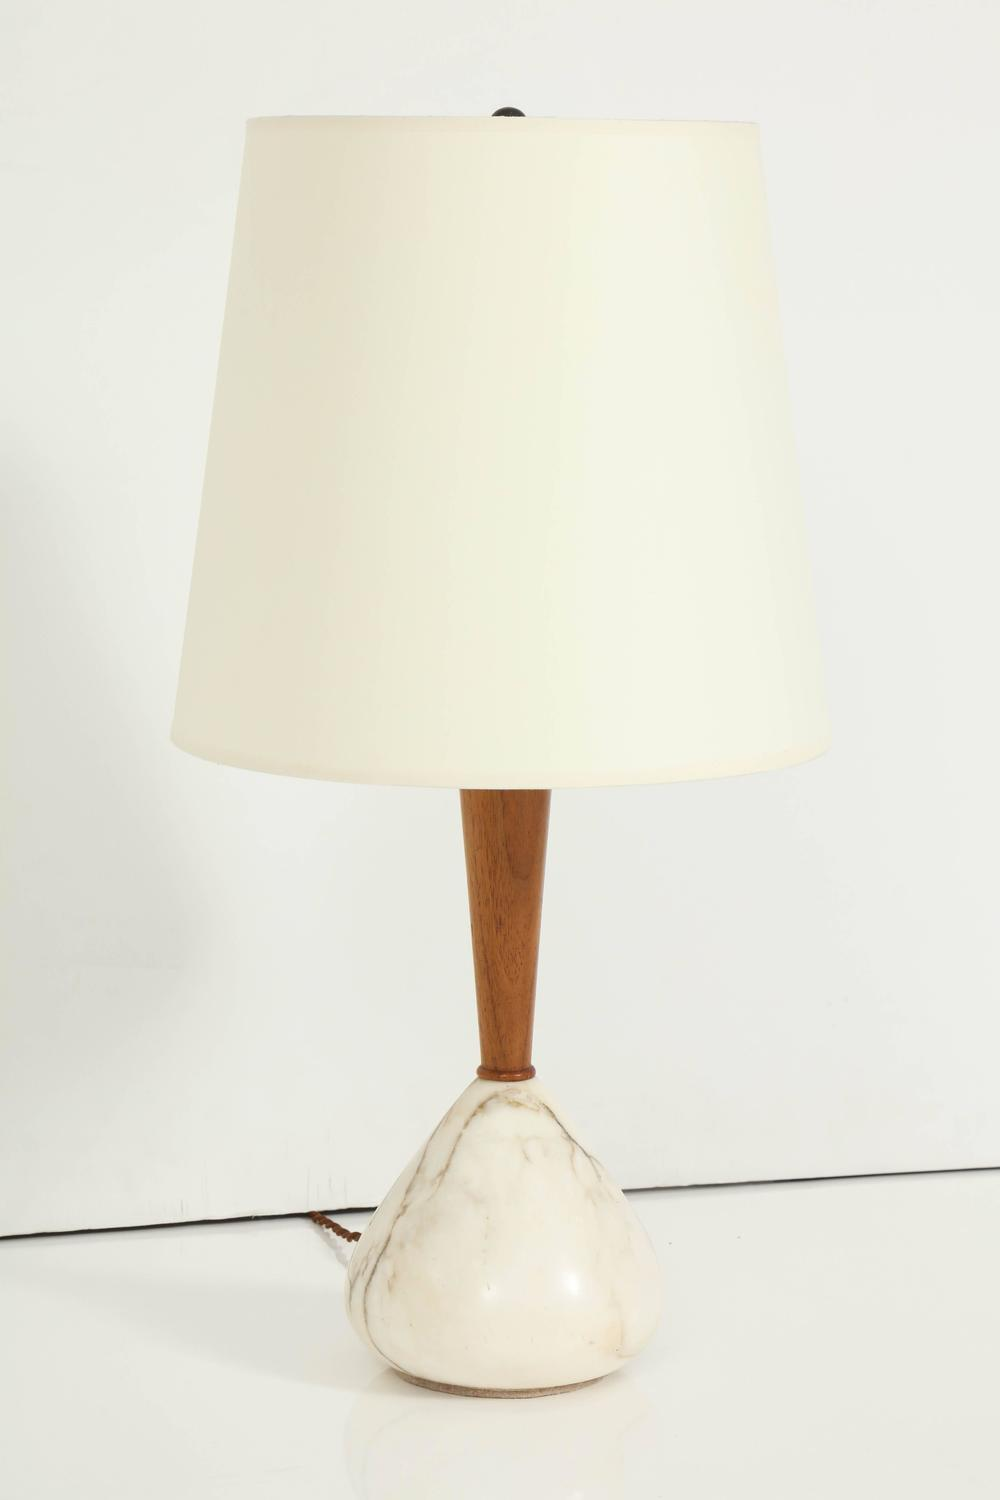 Pair Of Bedside Lamps For Sale At 1stdibs